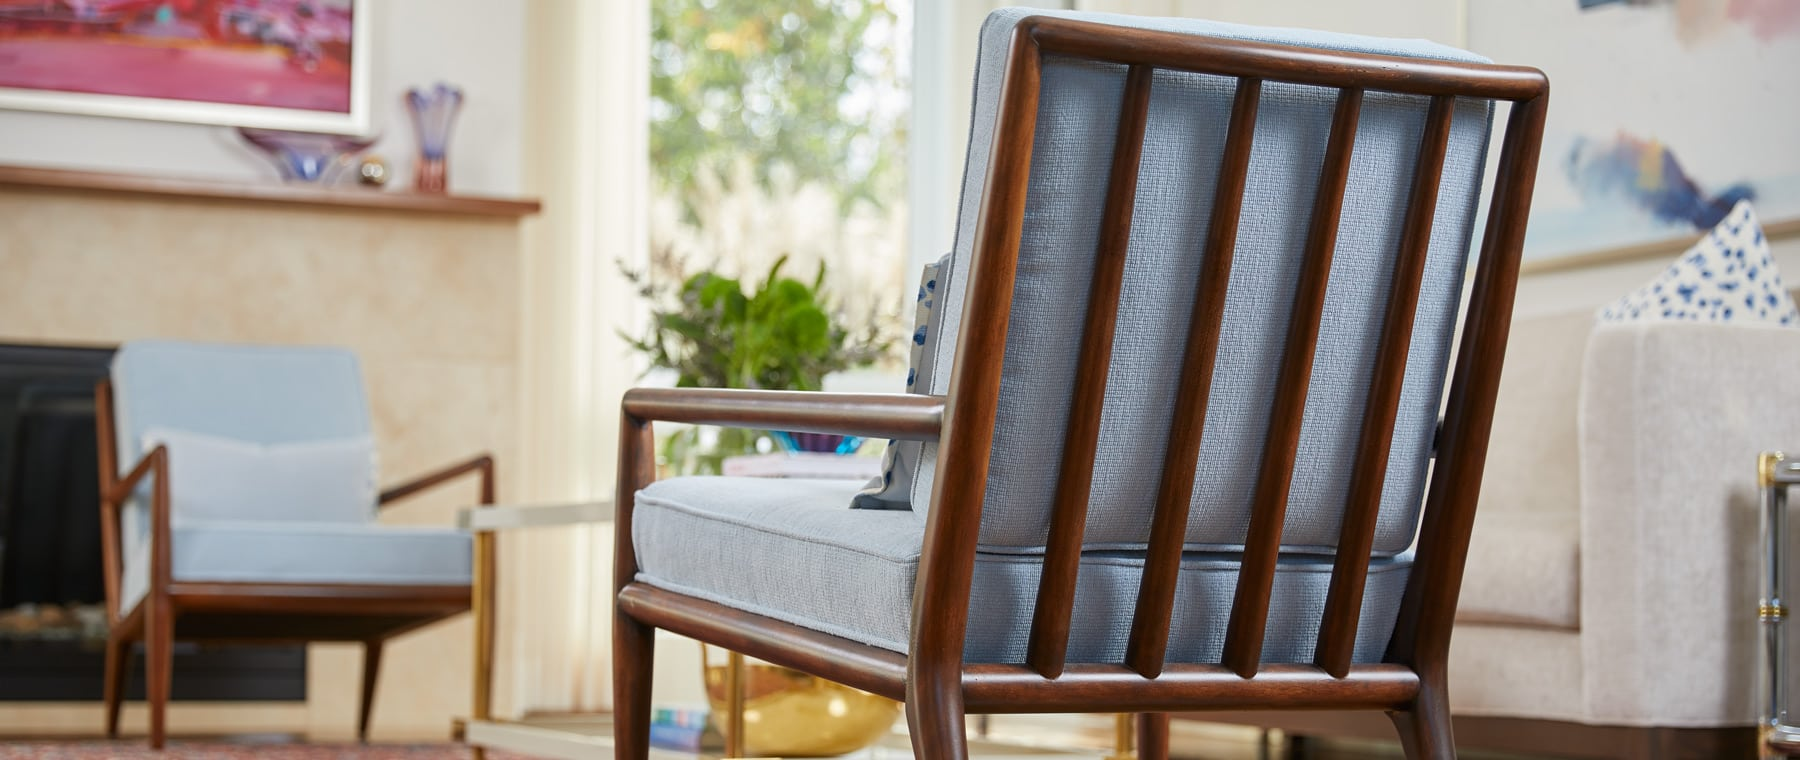 Mid-century-modern treasures, Robsjohn-Gibbings chairs hold place of pride in home